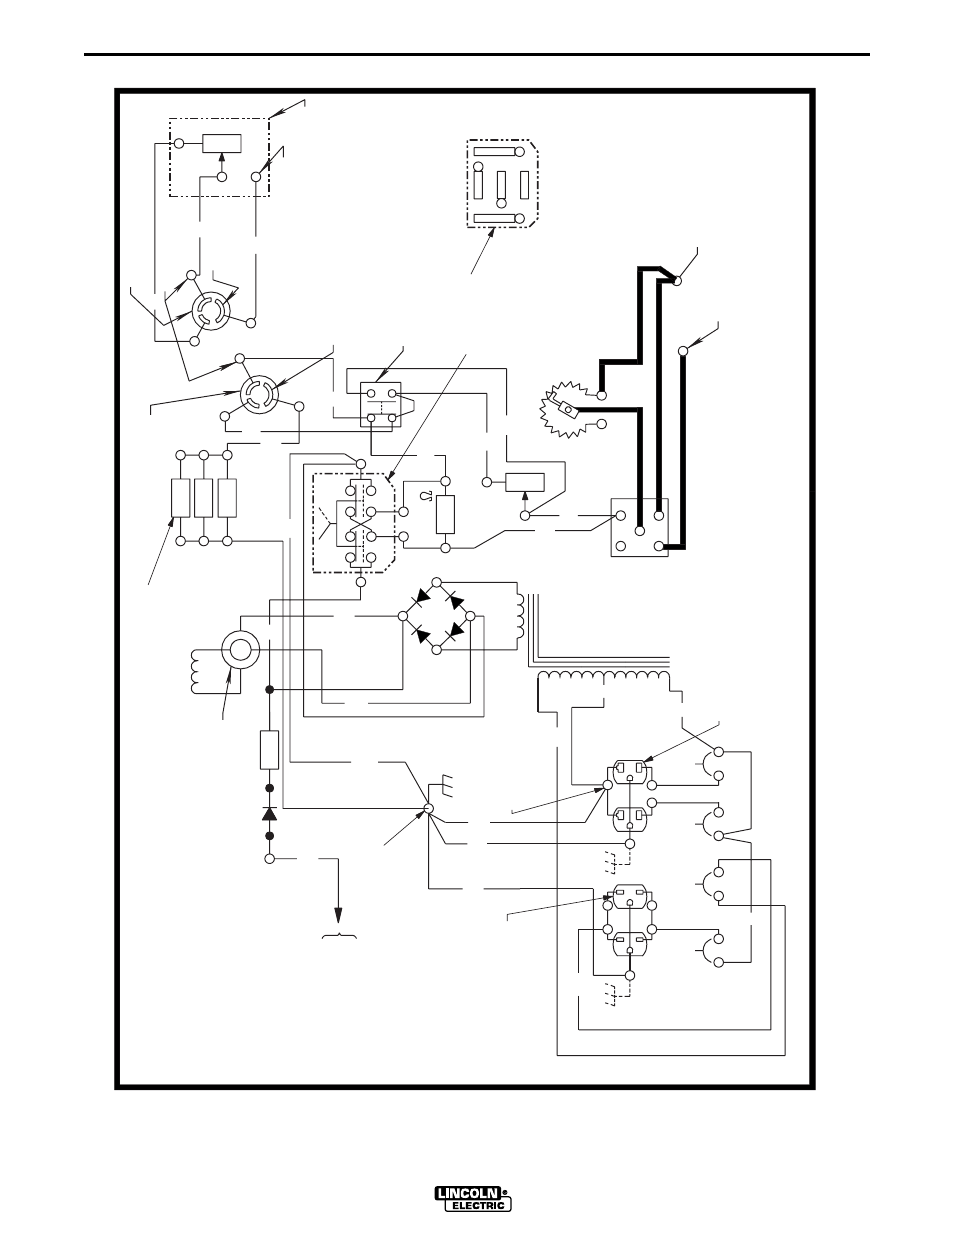 Lincoln Welder Receptacle Wiring Diagram Data Schematic Diagrams Sae400 Weldn Air Control Sae 400 Engine